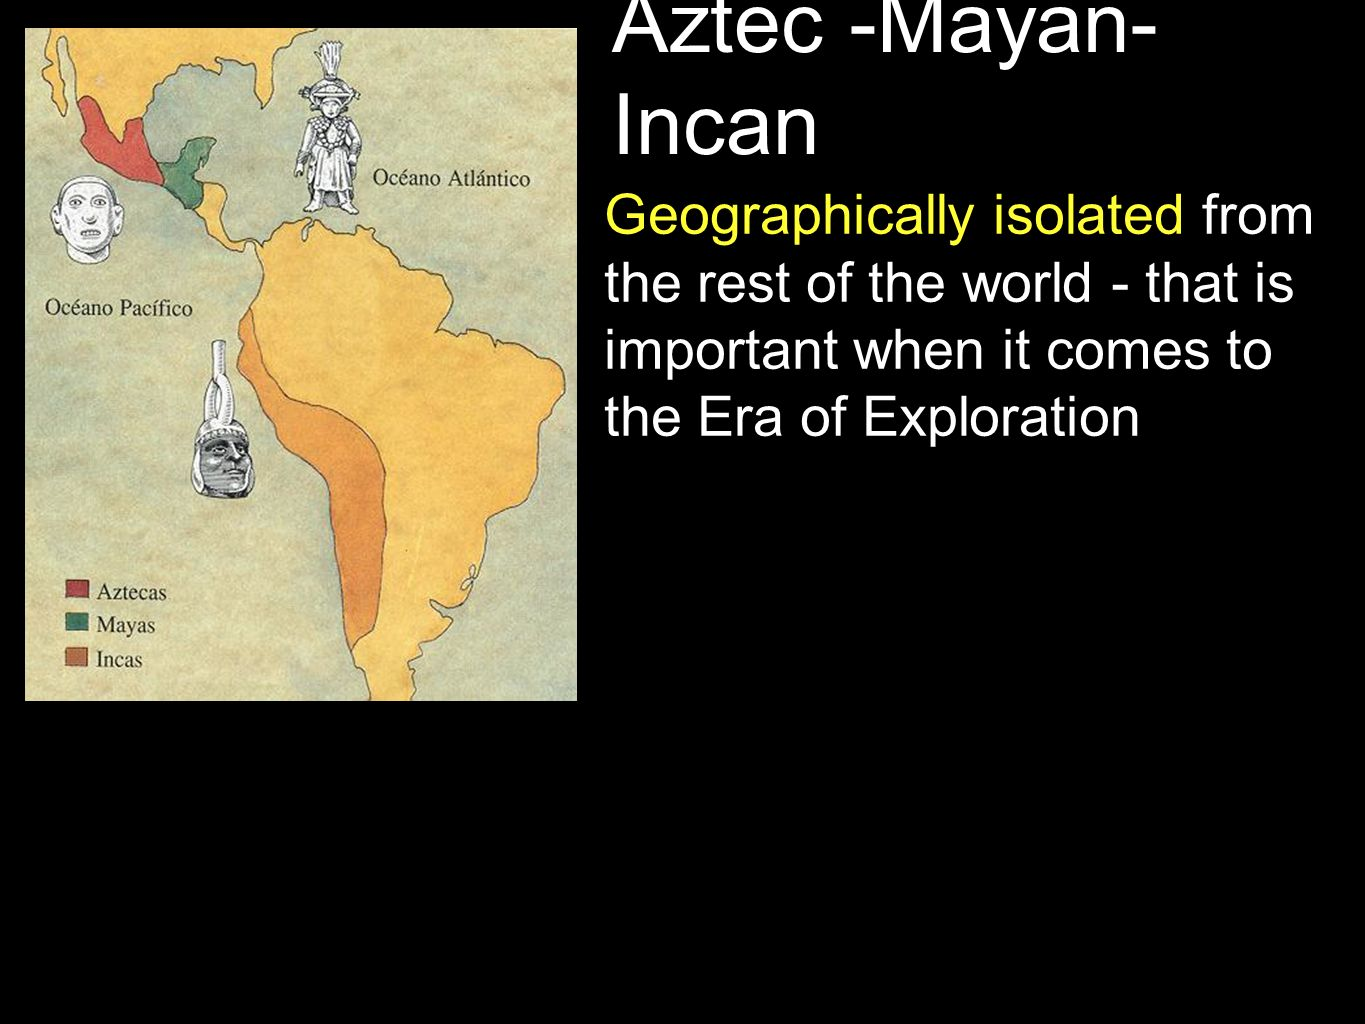 Aztec -Mayan- Incan Socially advanced with large, well developed empires, systems of trade, and networks